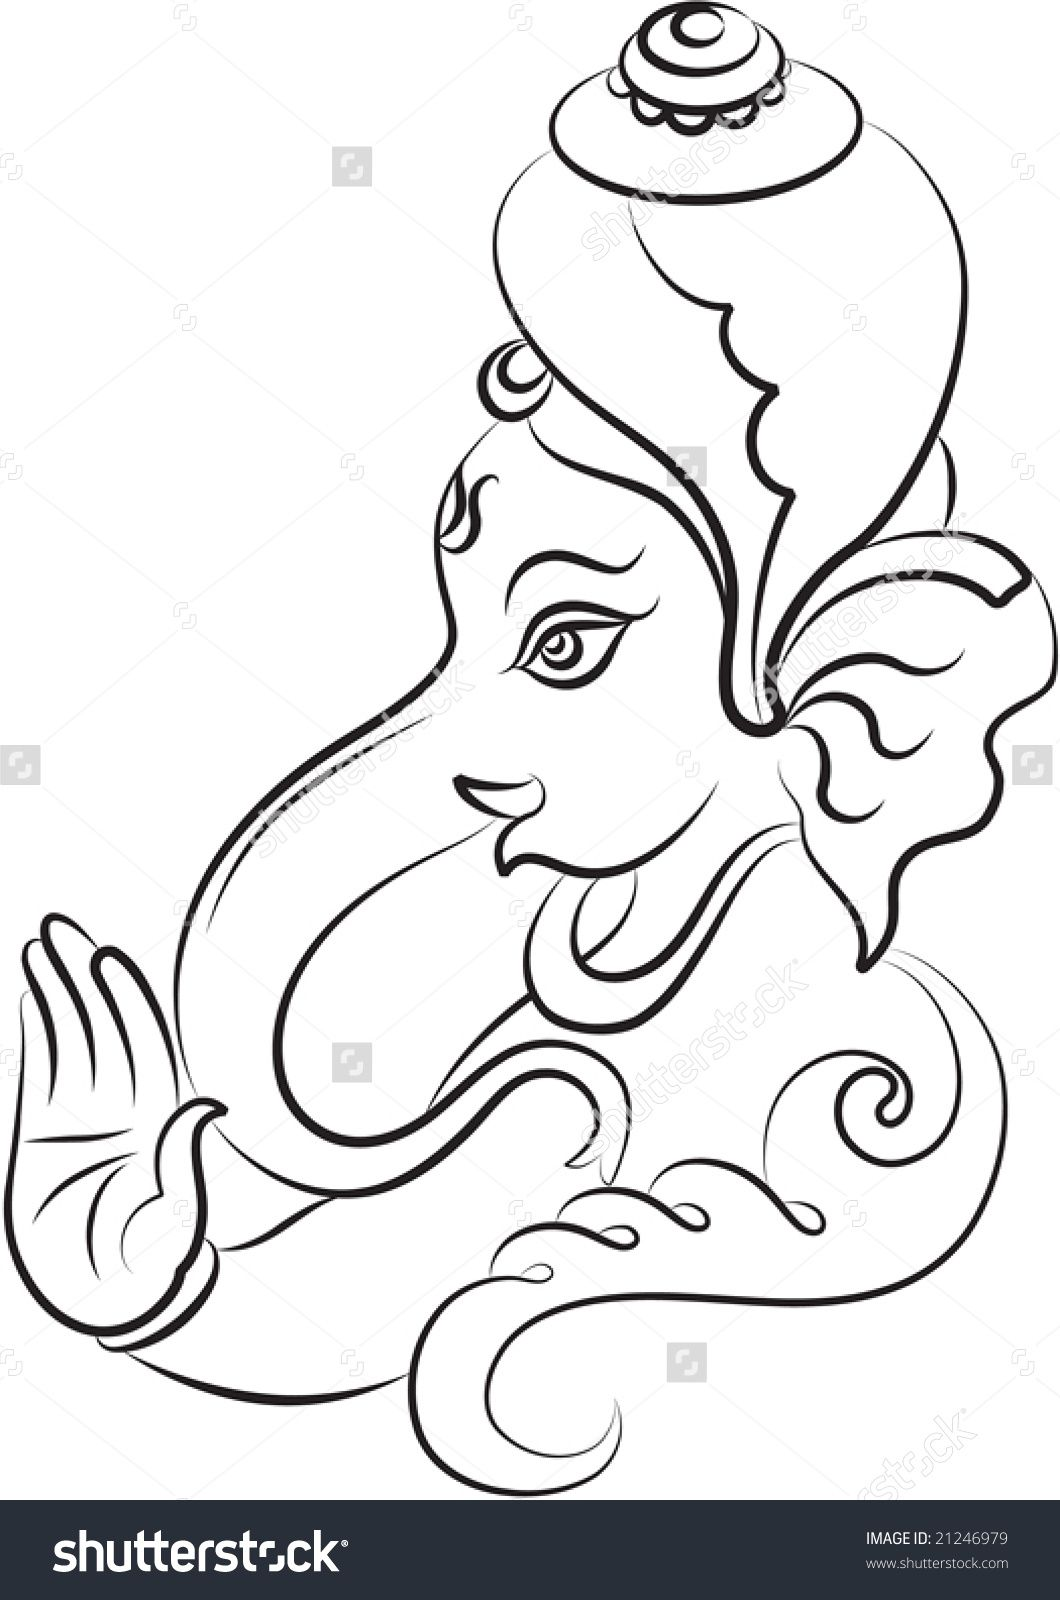 Simple ganesh line drawings google search ganesha drawing god pictures diy art